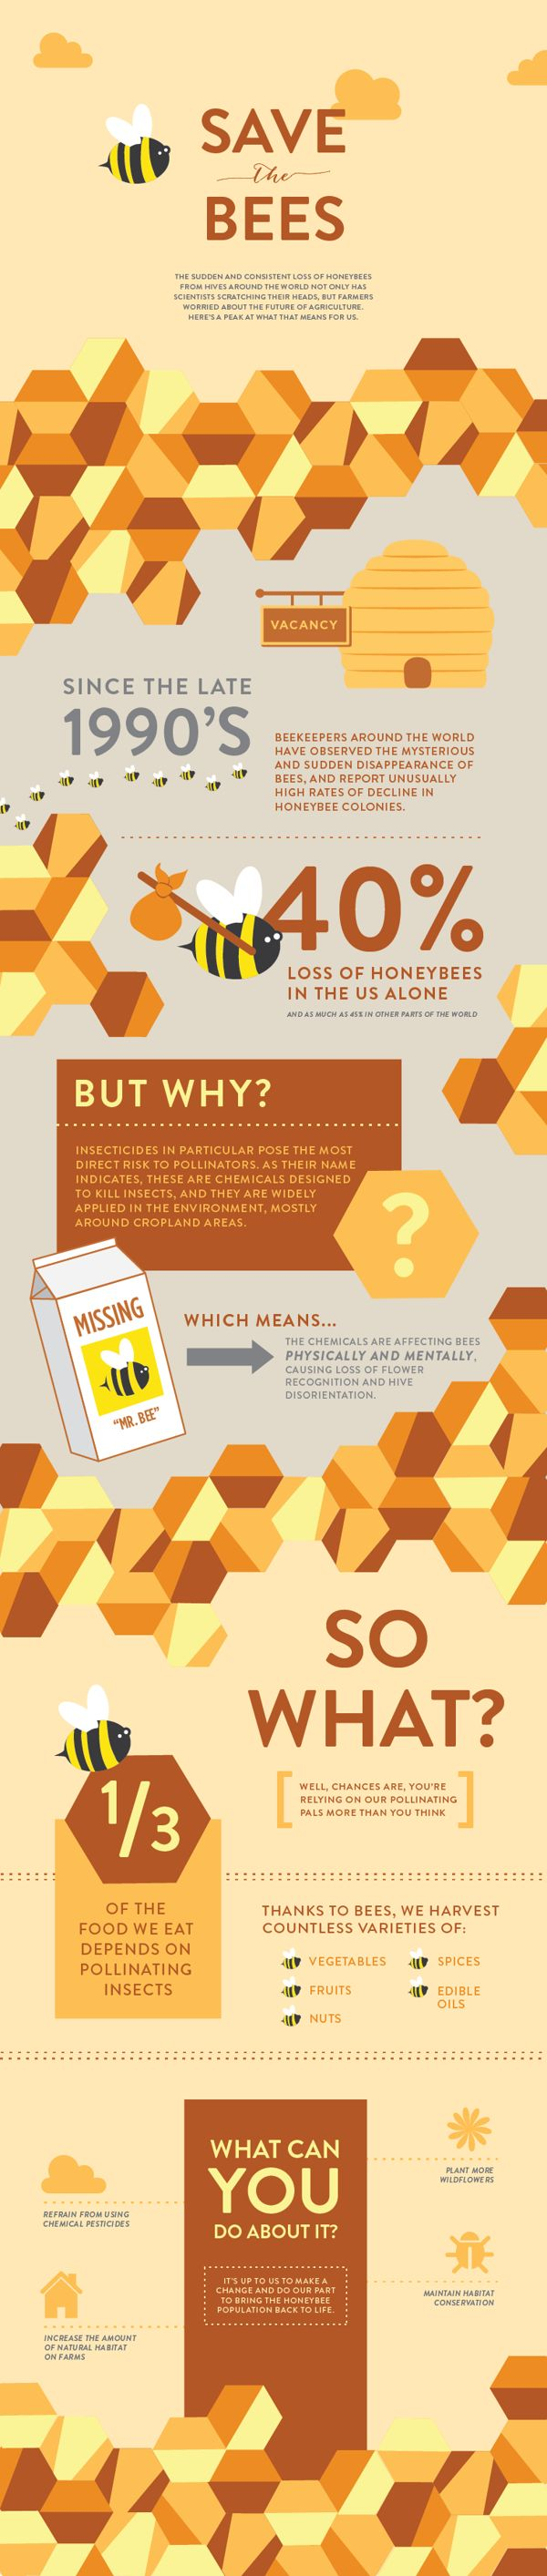 Save the bees. Save the future of agriculture. #infographic #design (View more at www.aldenchong.com)